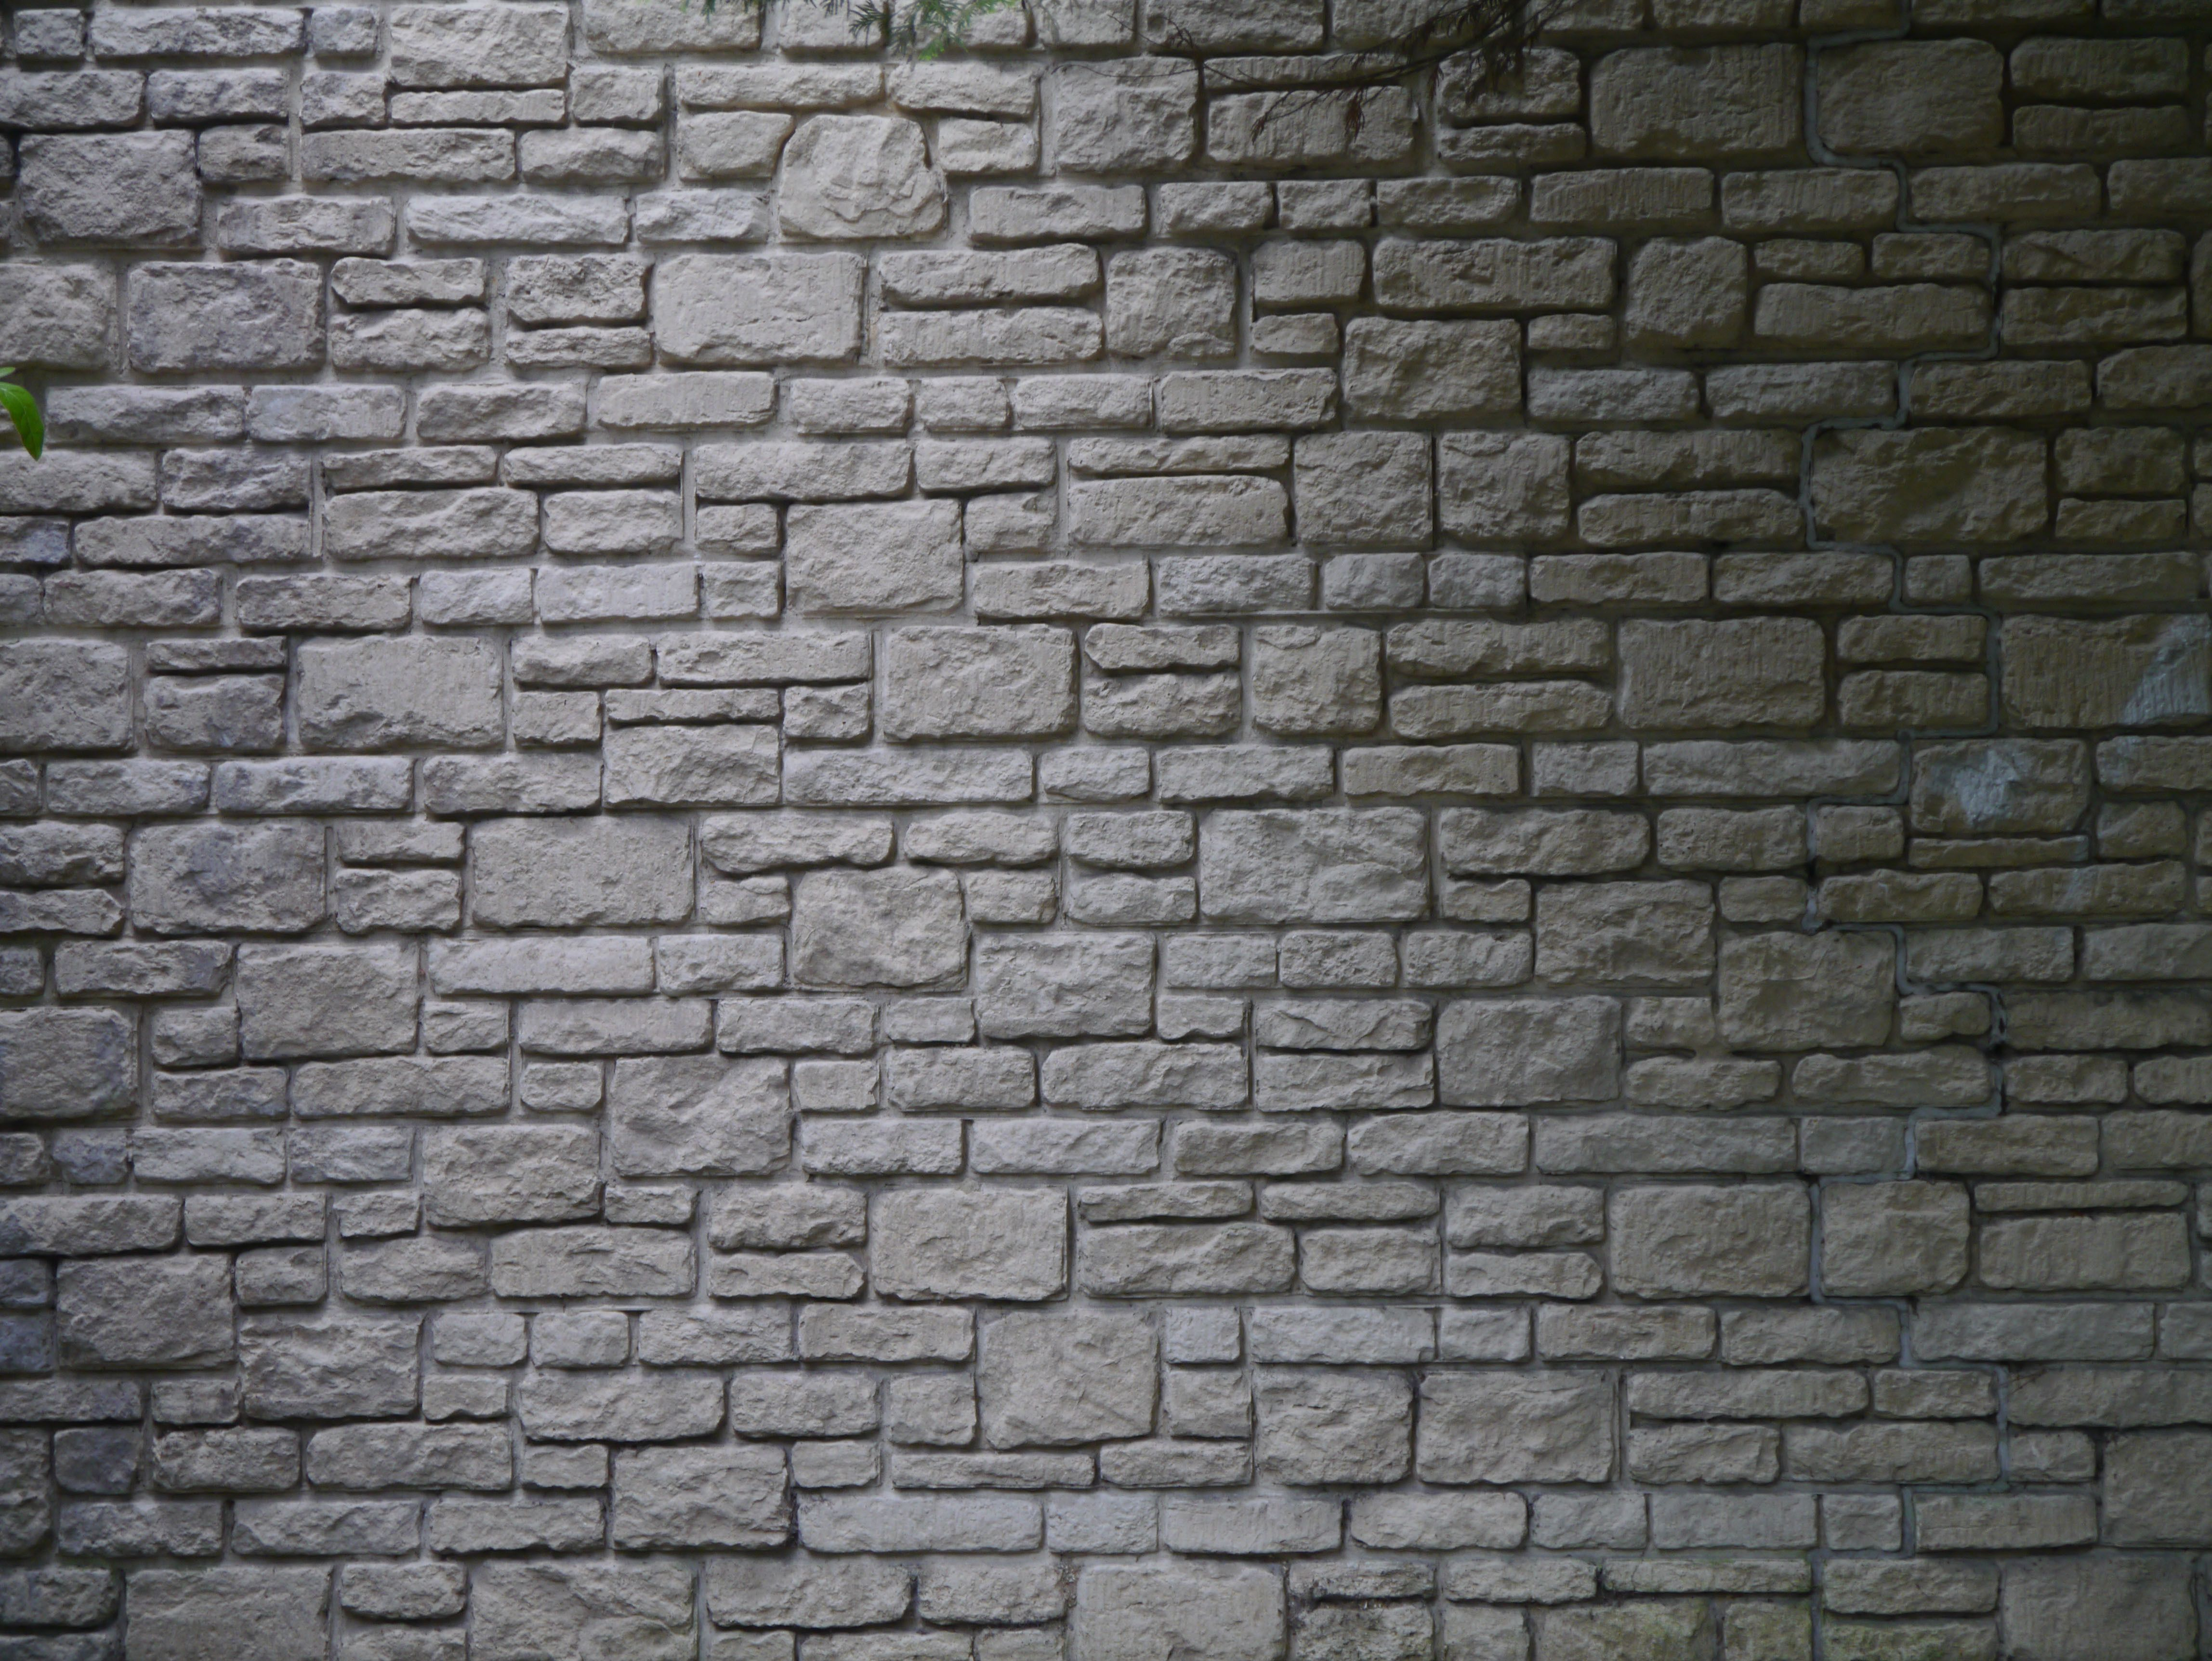 old-stone-wall-texture-image-5-362.JPG (4592×3448) | Stone ...